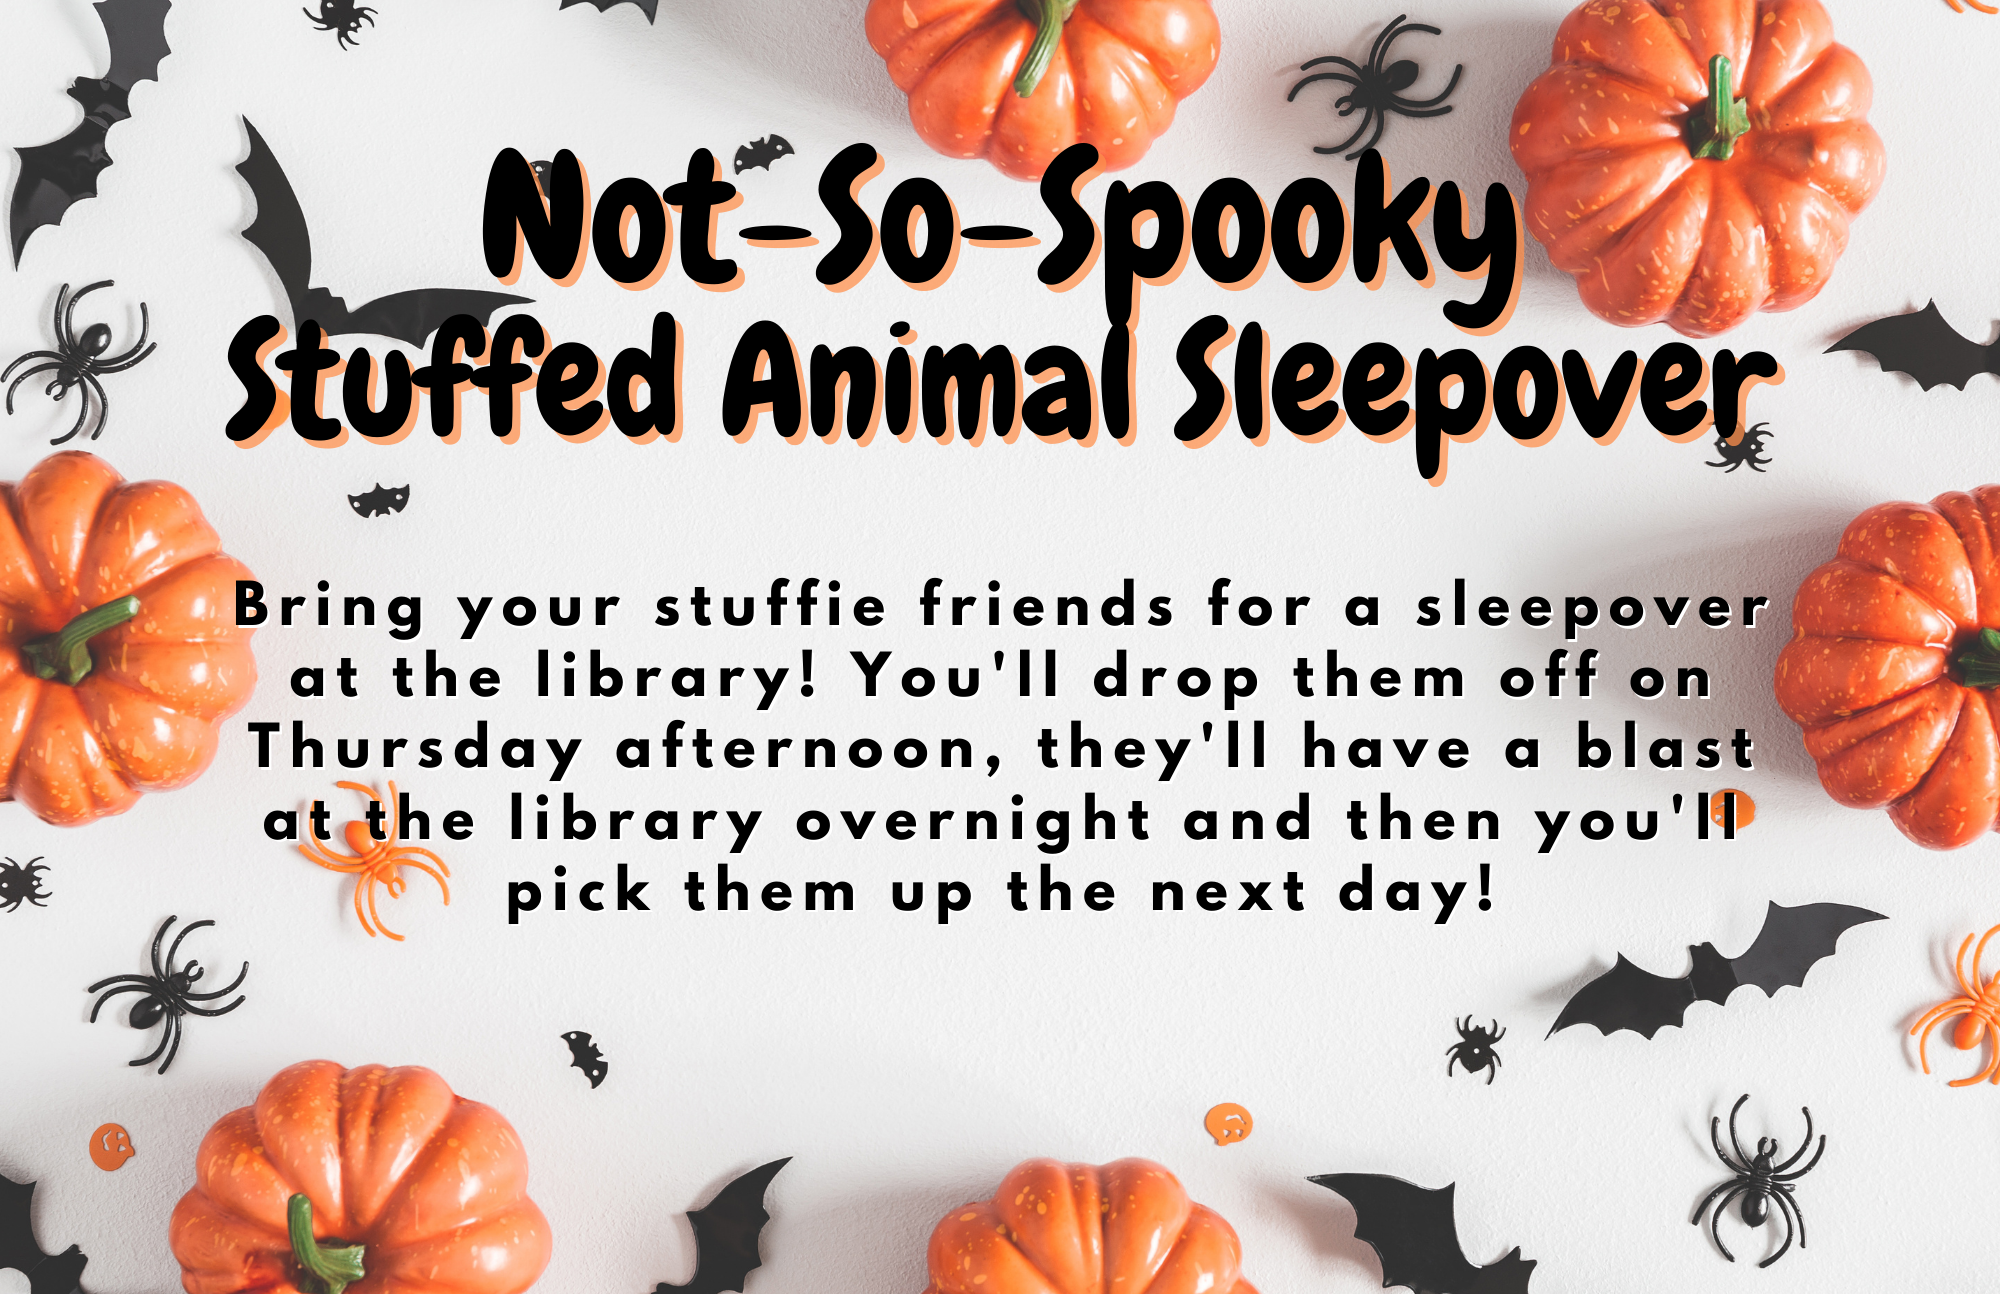 Drop off your stuffie friends at the LaGrange Memorial Library on October 28 for some Halloween-y fun overnight with Mrs. Kate and Mrs. Garit! Don't worry, you'll get them back!